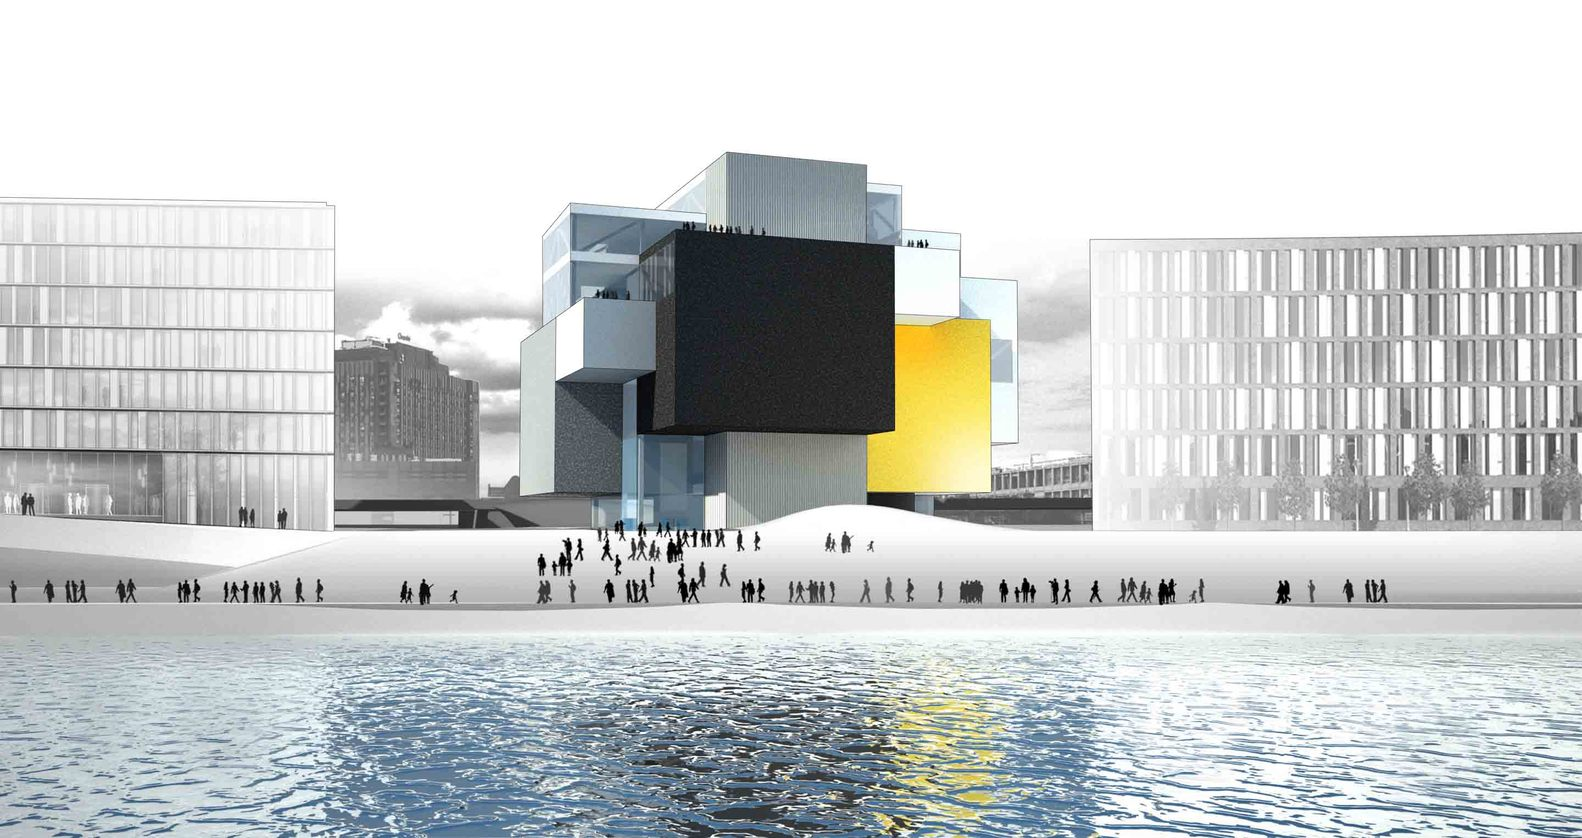 Architect Company Gallery Of Haus Der Zukunft Competition Entry  Project Architect